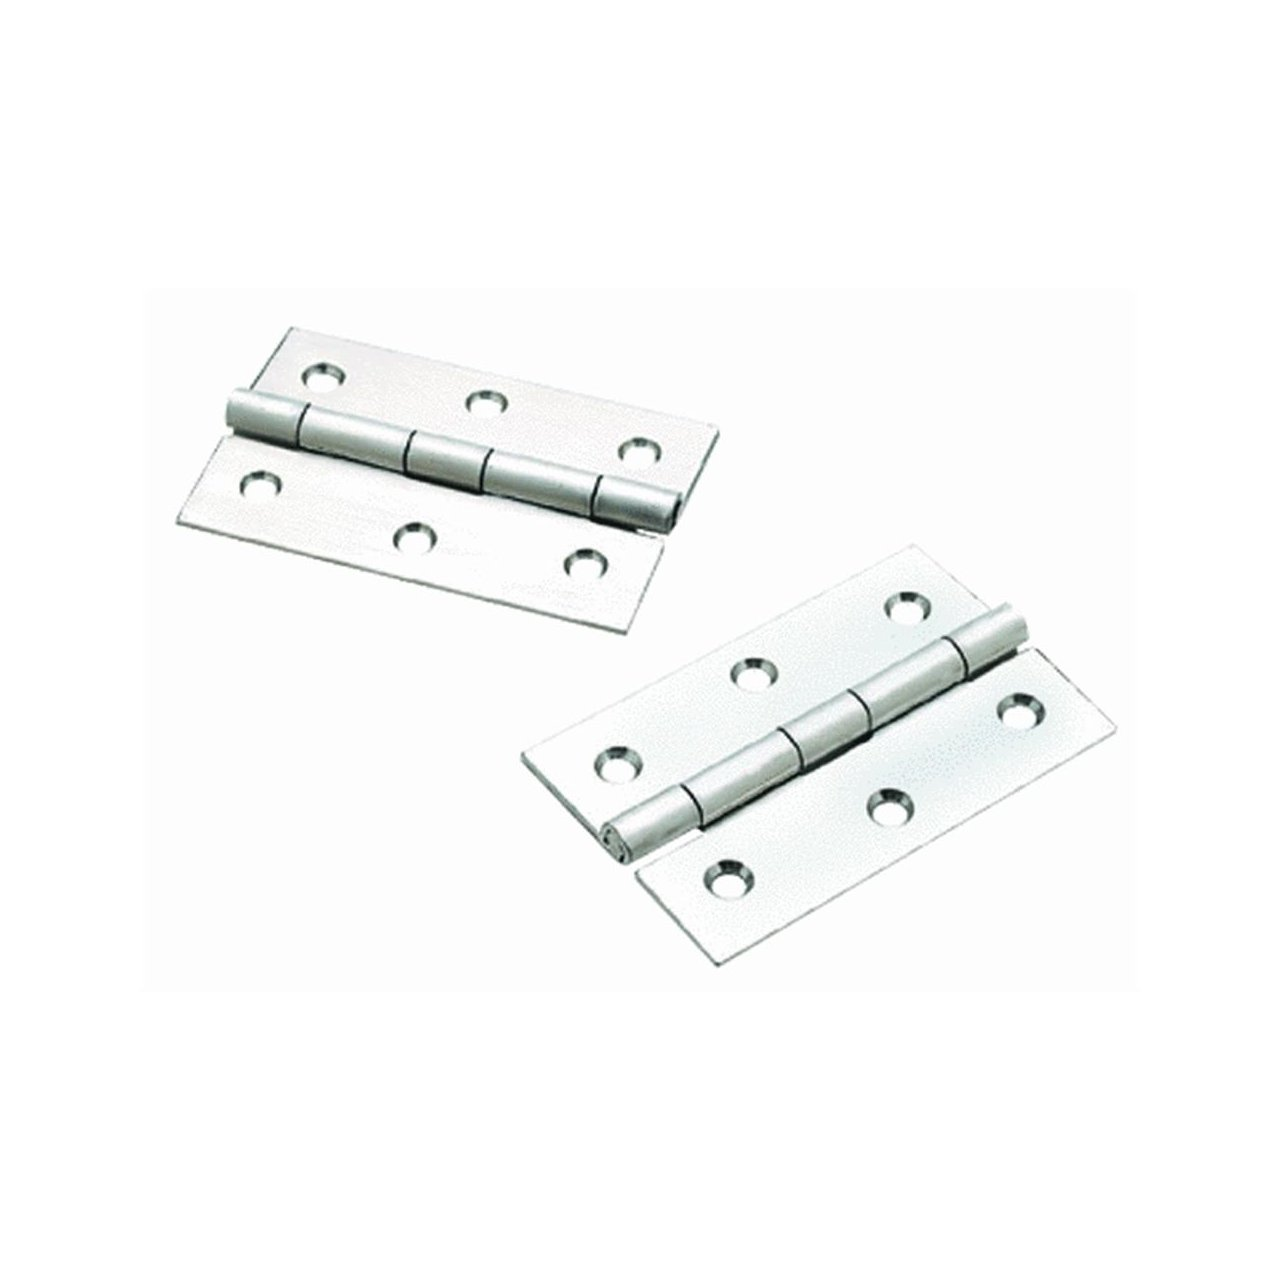 SEACHOICE Prod 34911 Extruded Butt Hinges Steel 1-5//8 in X 2-1//2 in in